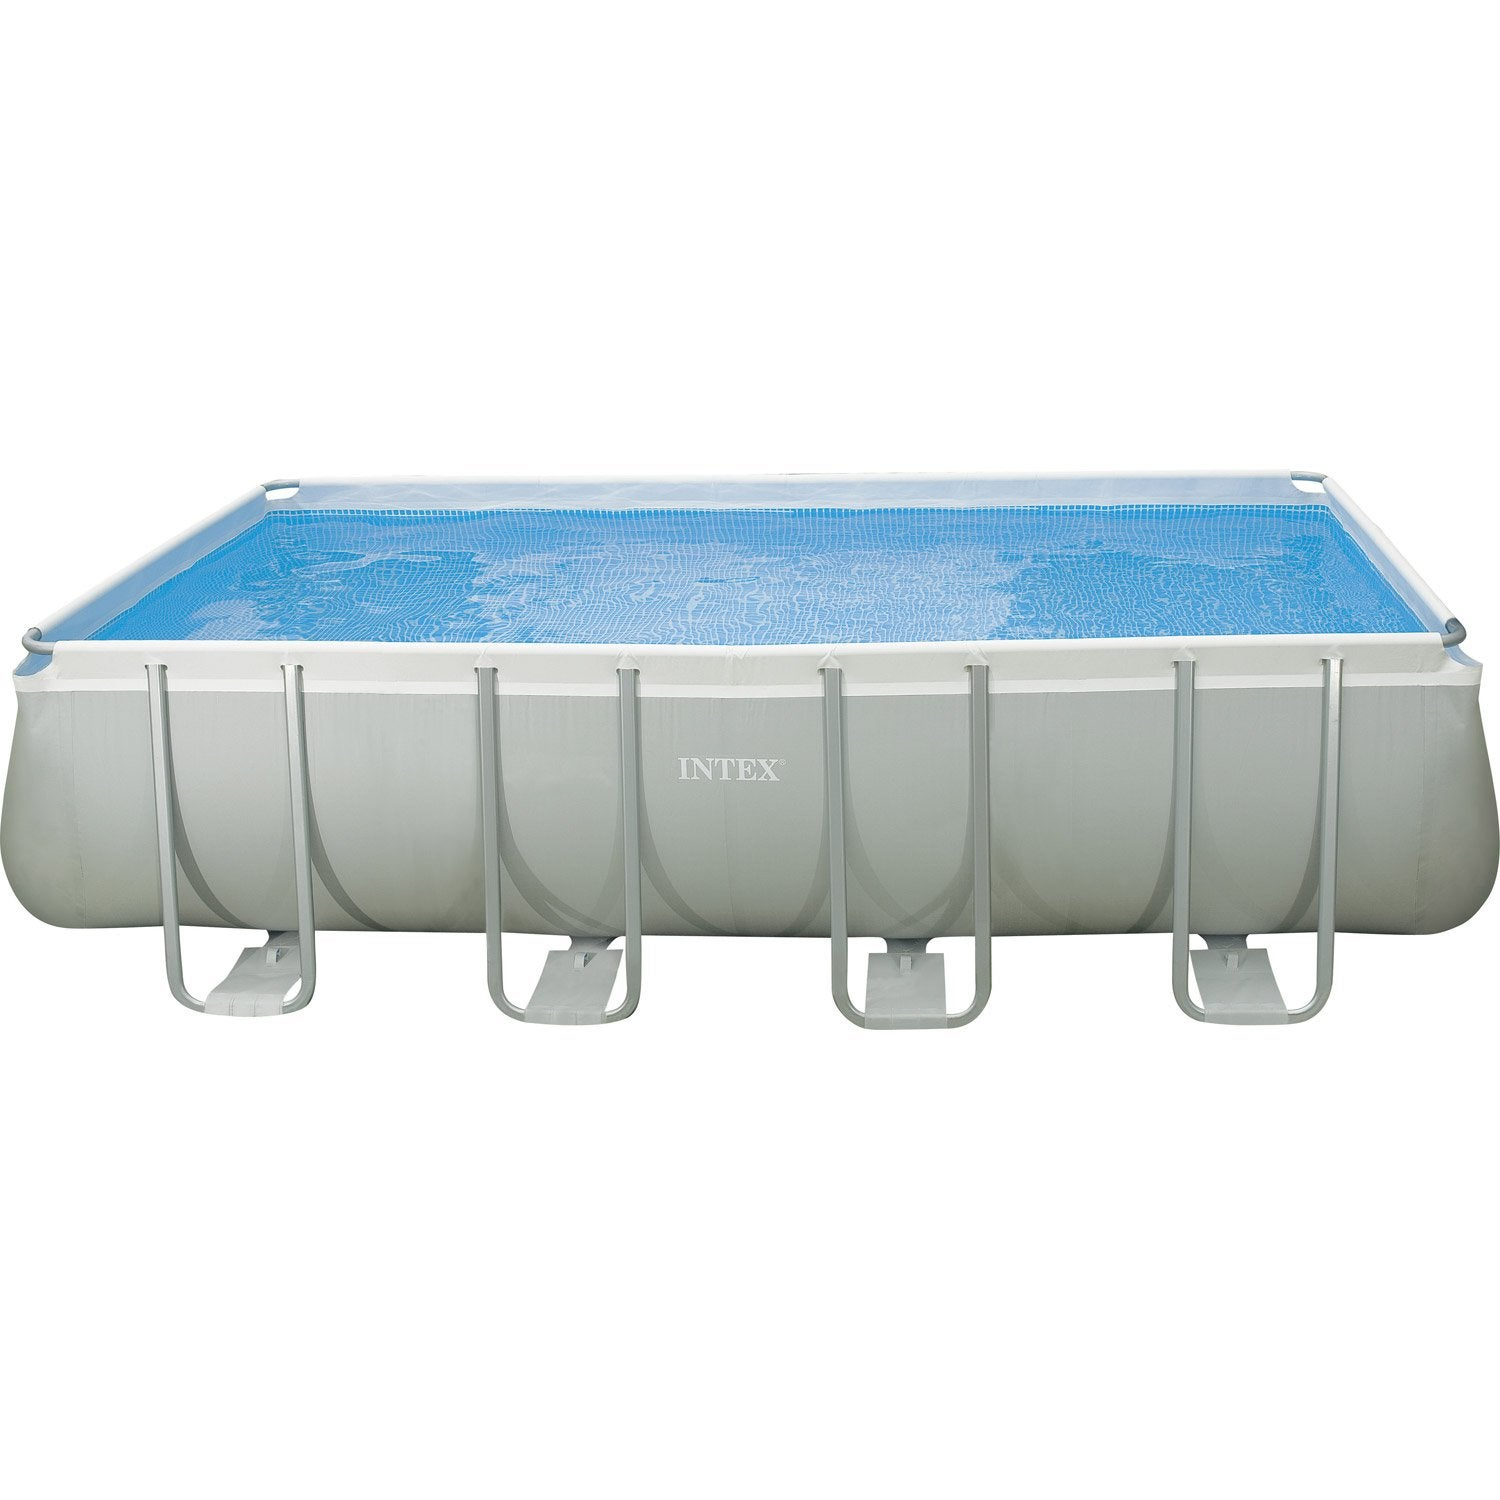 Piscine hors sol tubulaire ultra silver intex for Piscine hors sol intex prix